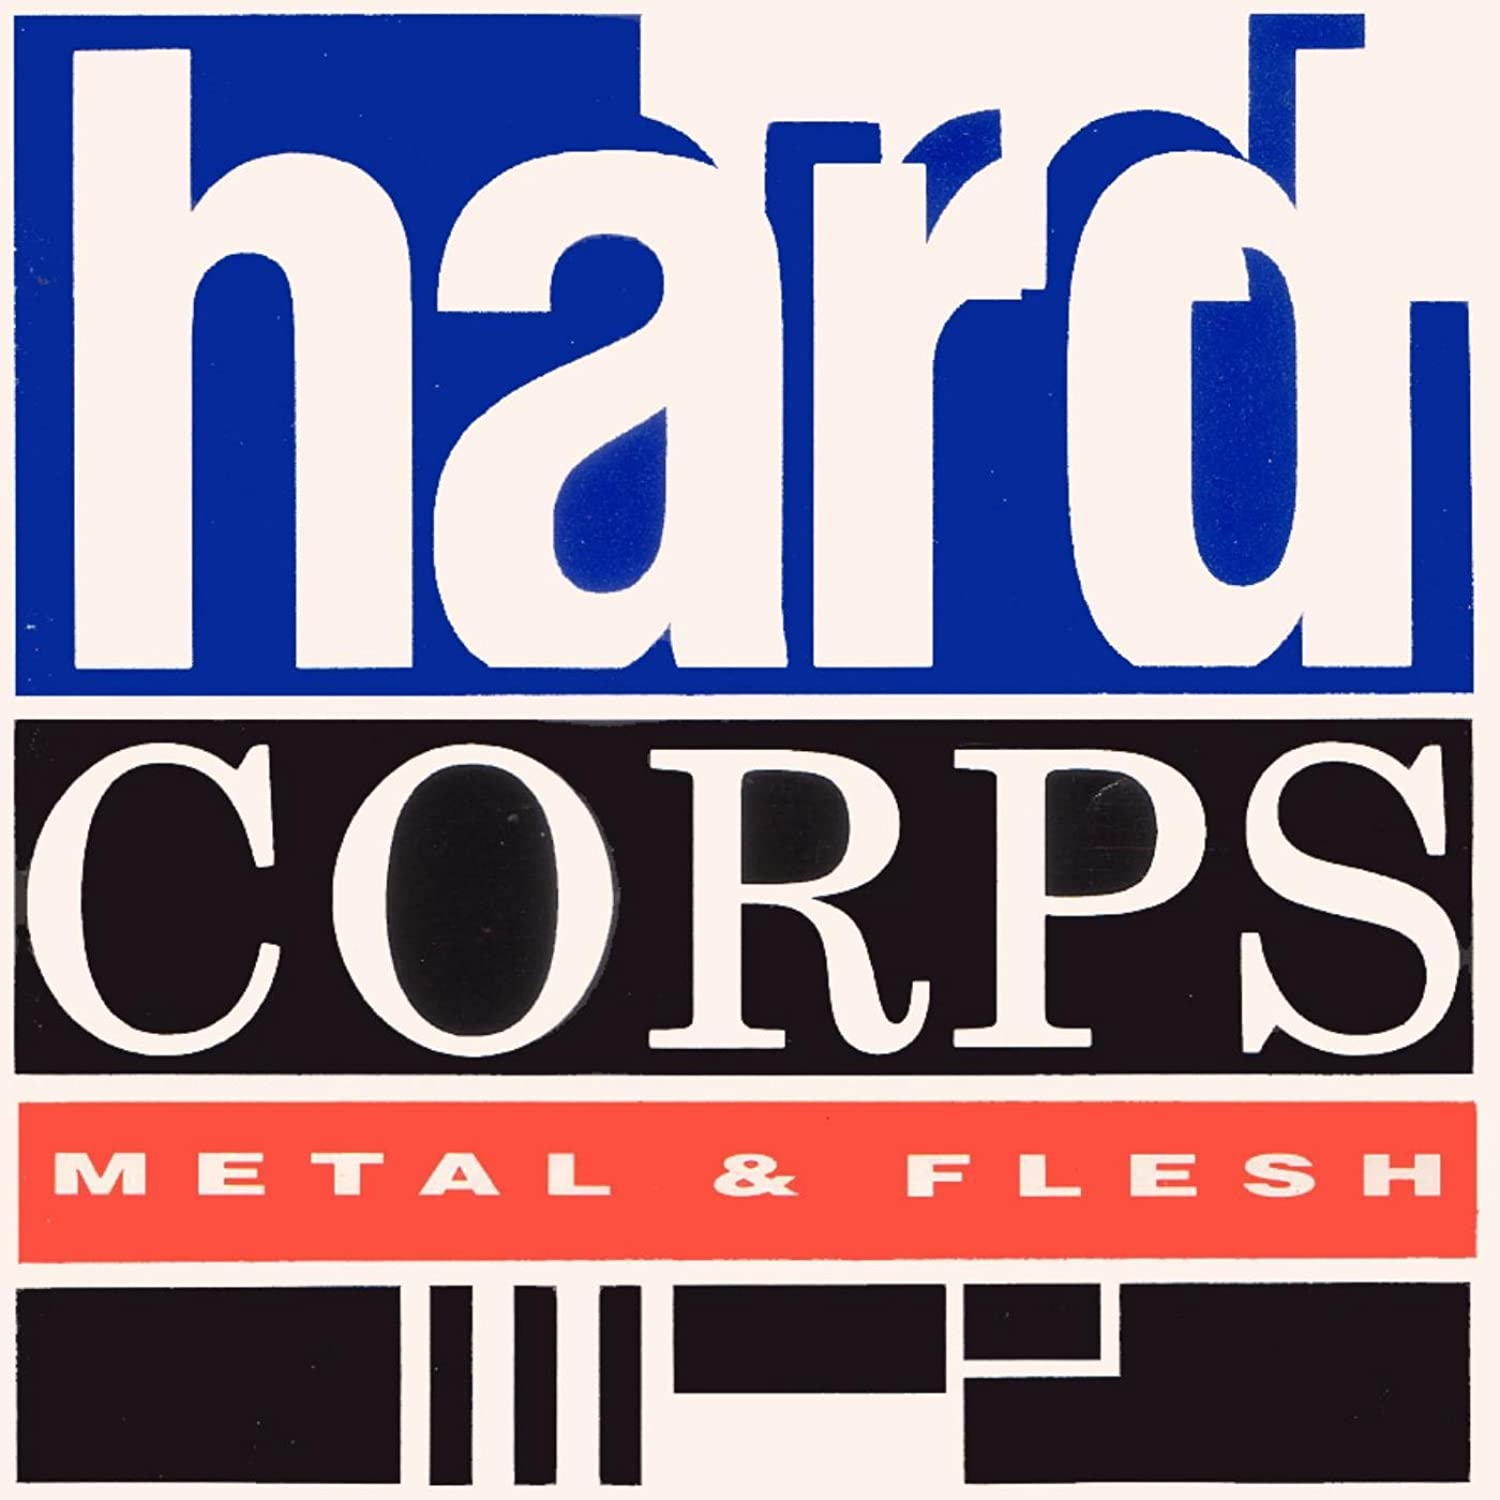 Hard Corps - Metal And Flesh